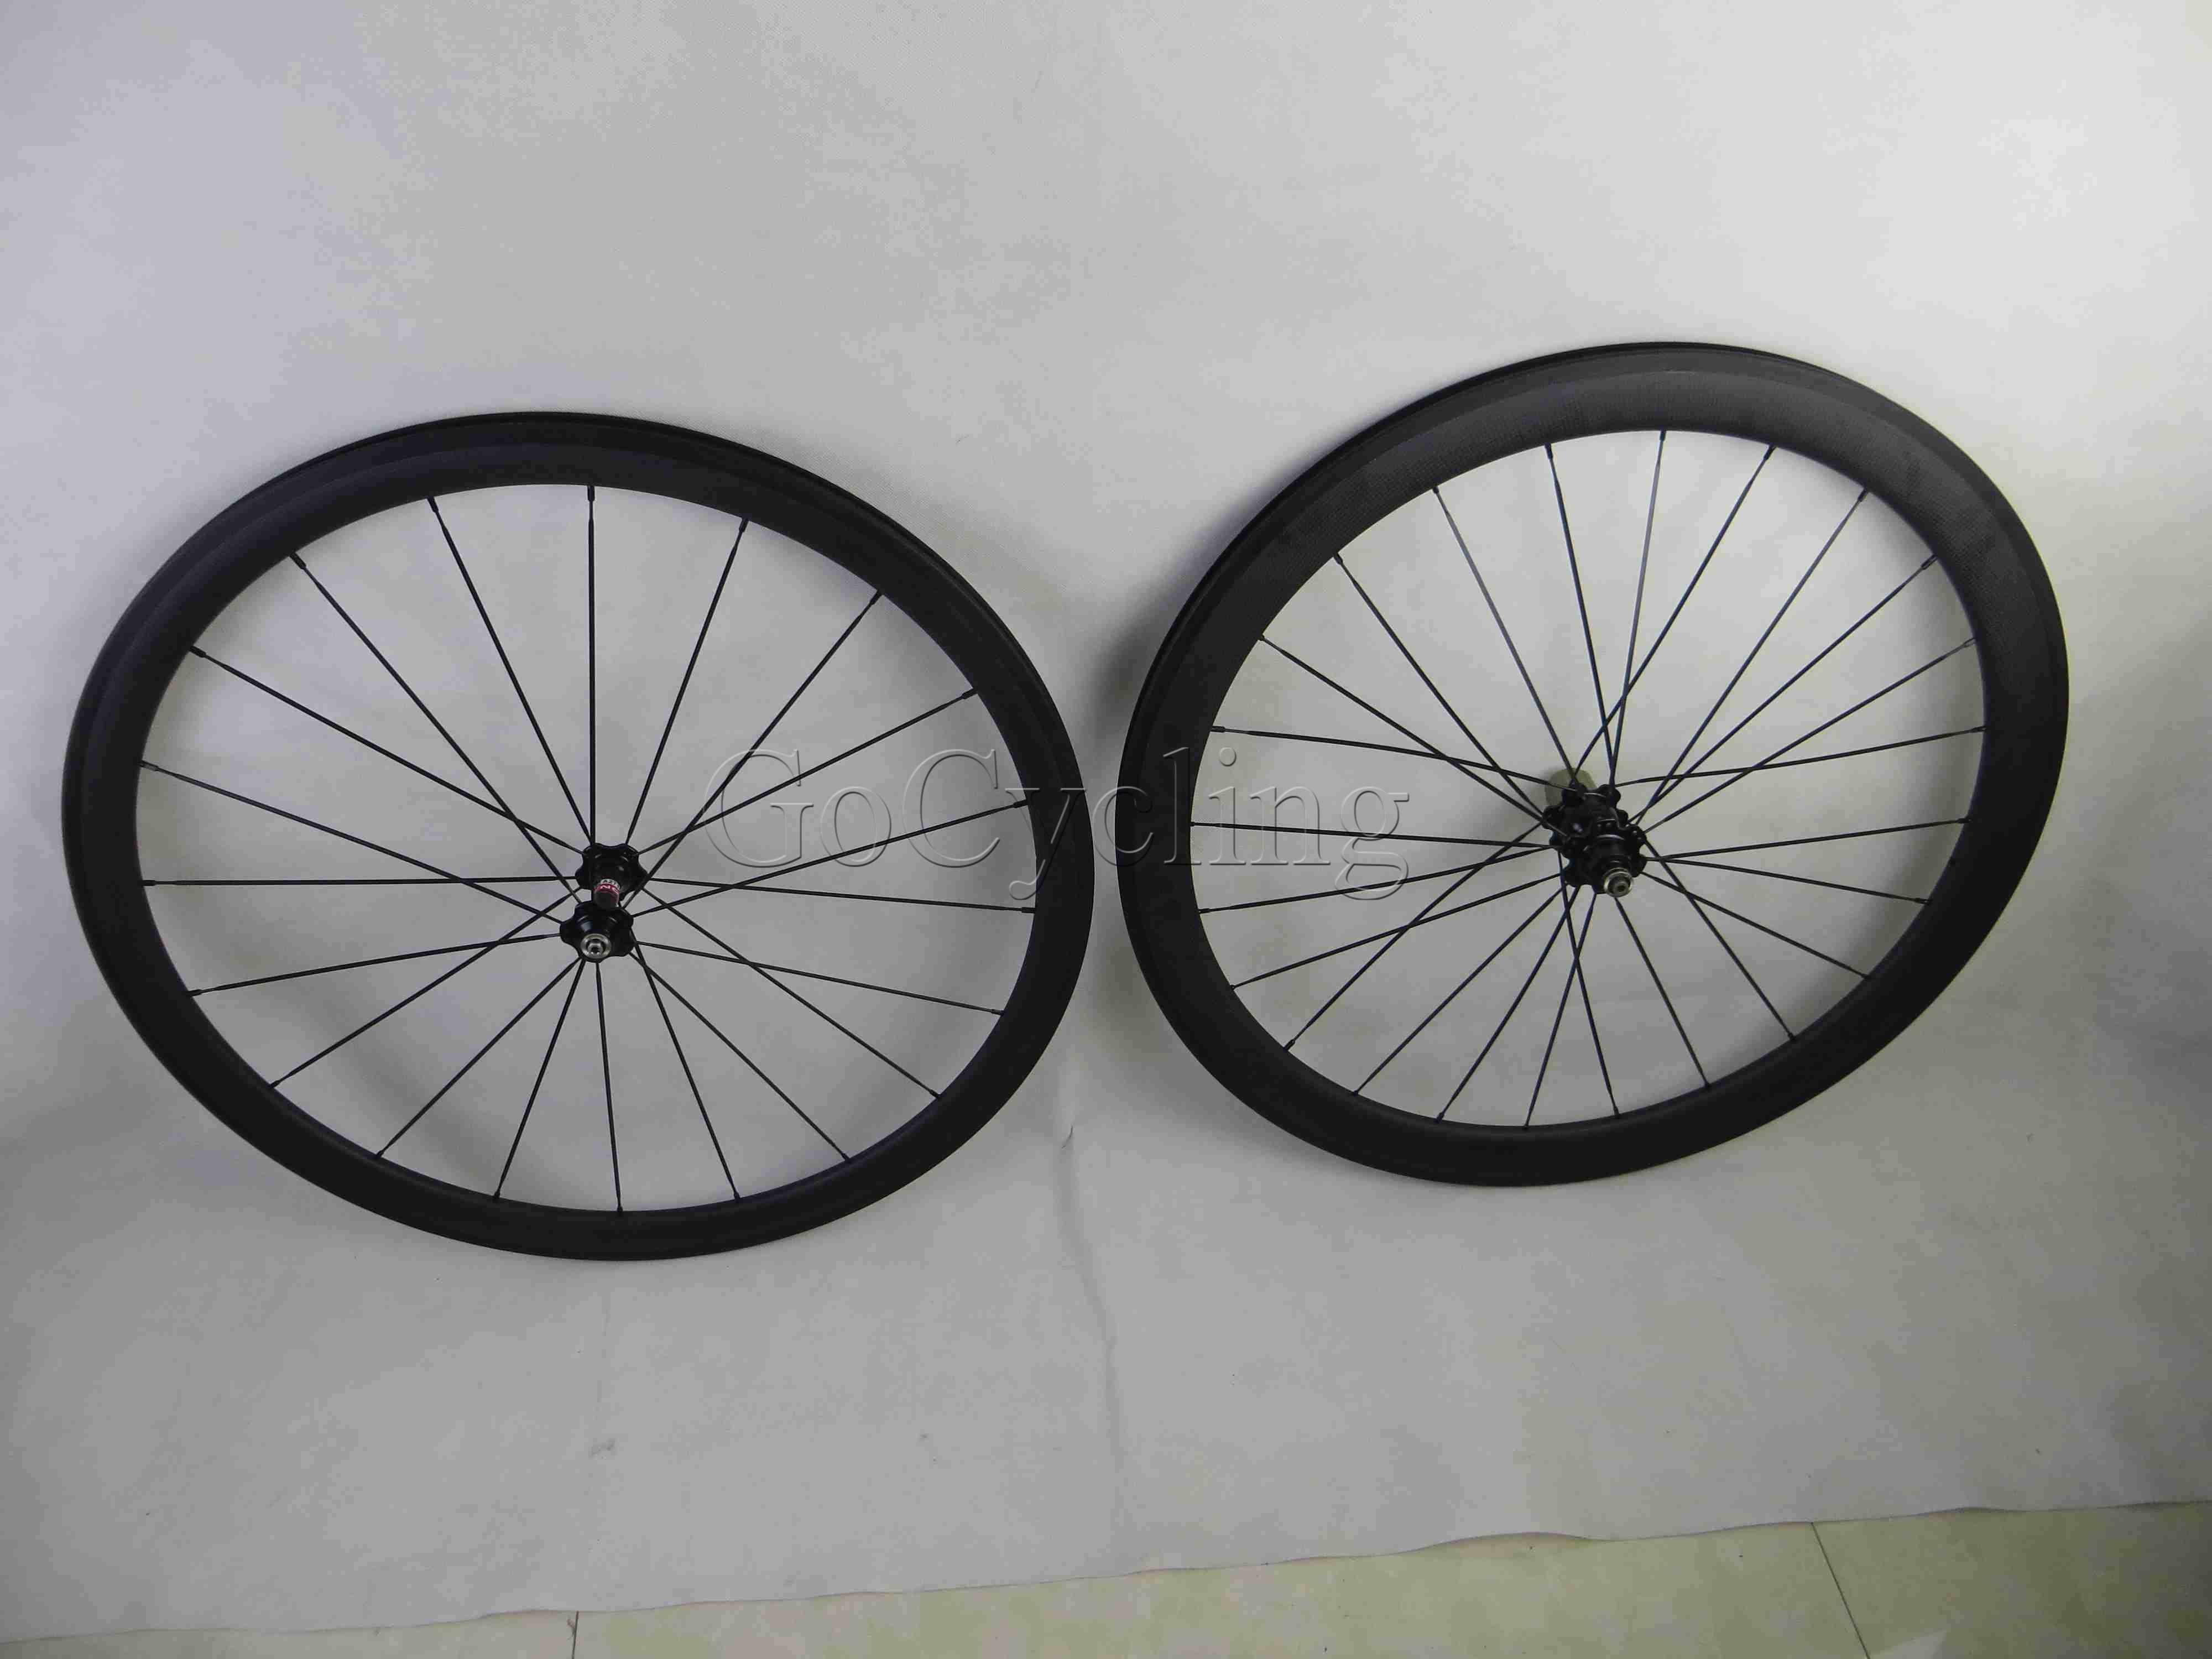 Carbon road bike wheels front wheel 38mm and rear wheel 50mm clincher tubular bicycle wheelset basalt brake surface 700c clear coat 3K matte